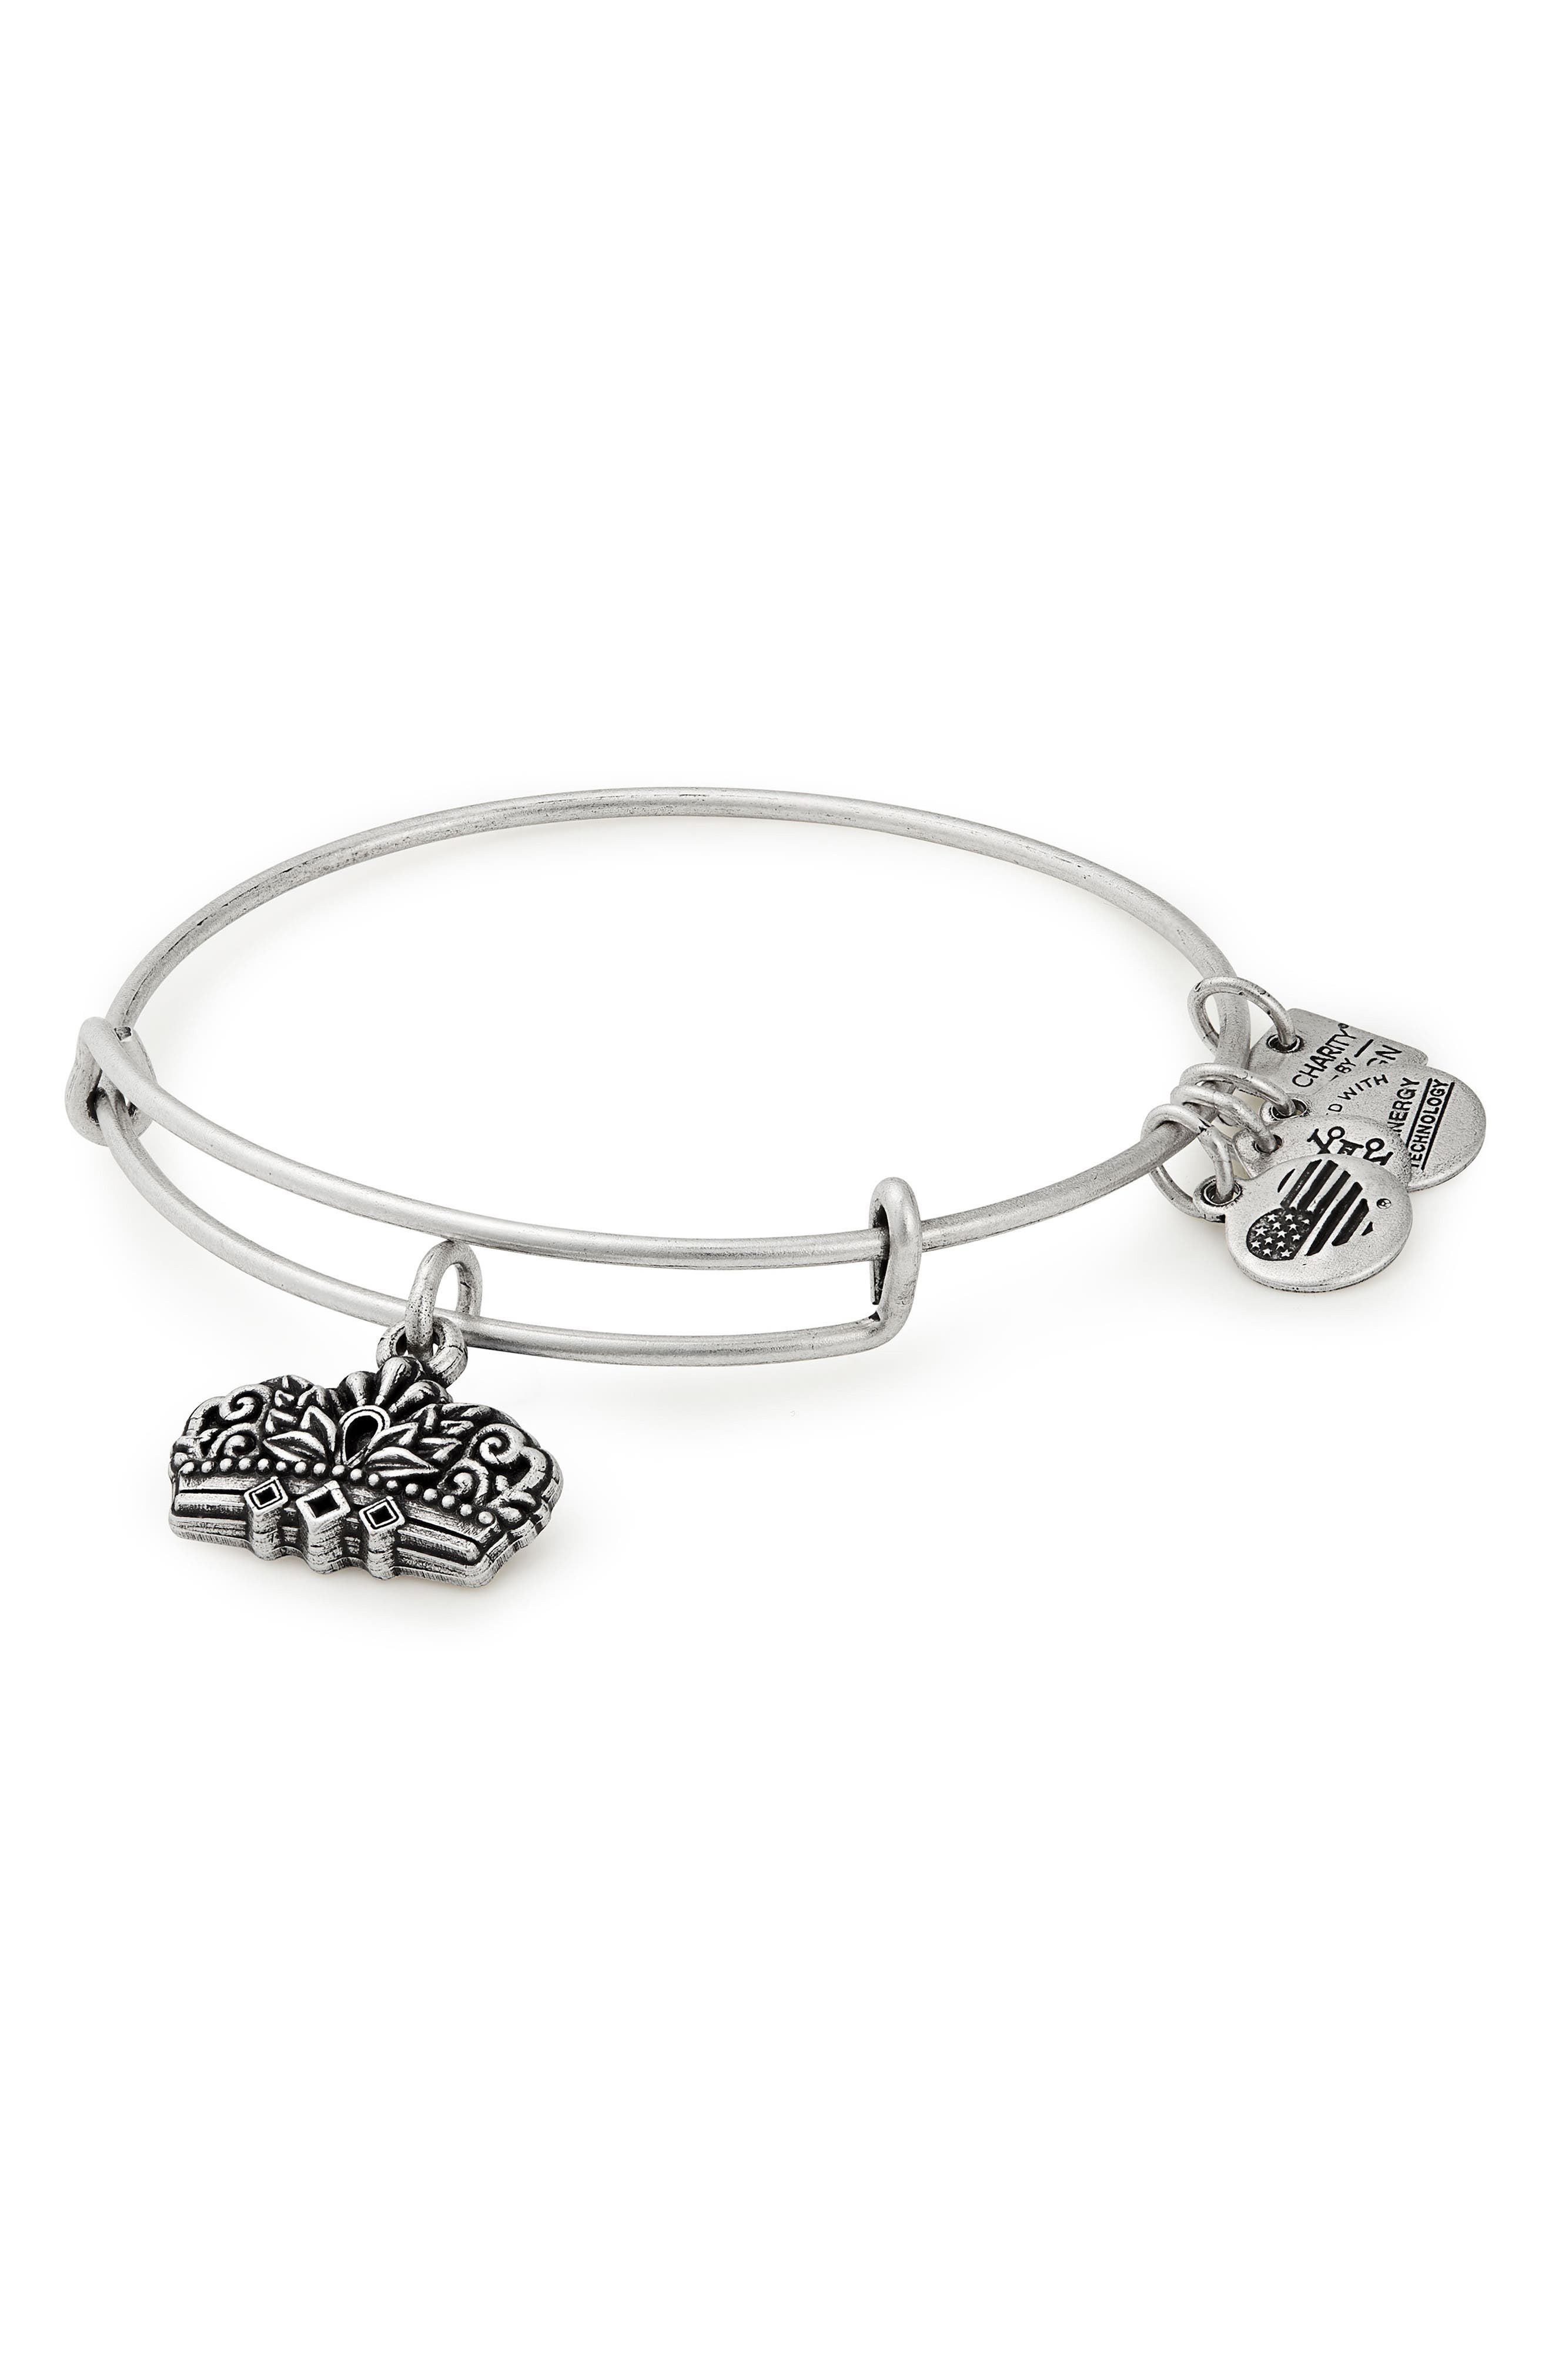 Alex And Ani CHARITY BY DESIGN CROWN BANGLE